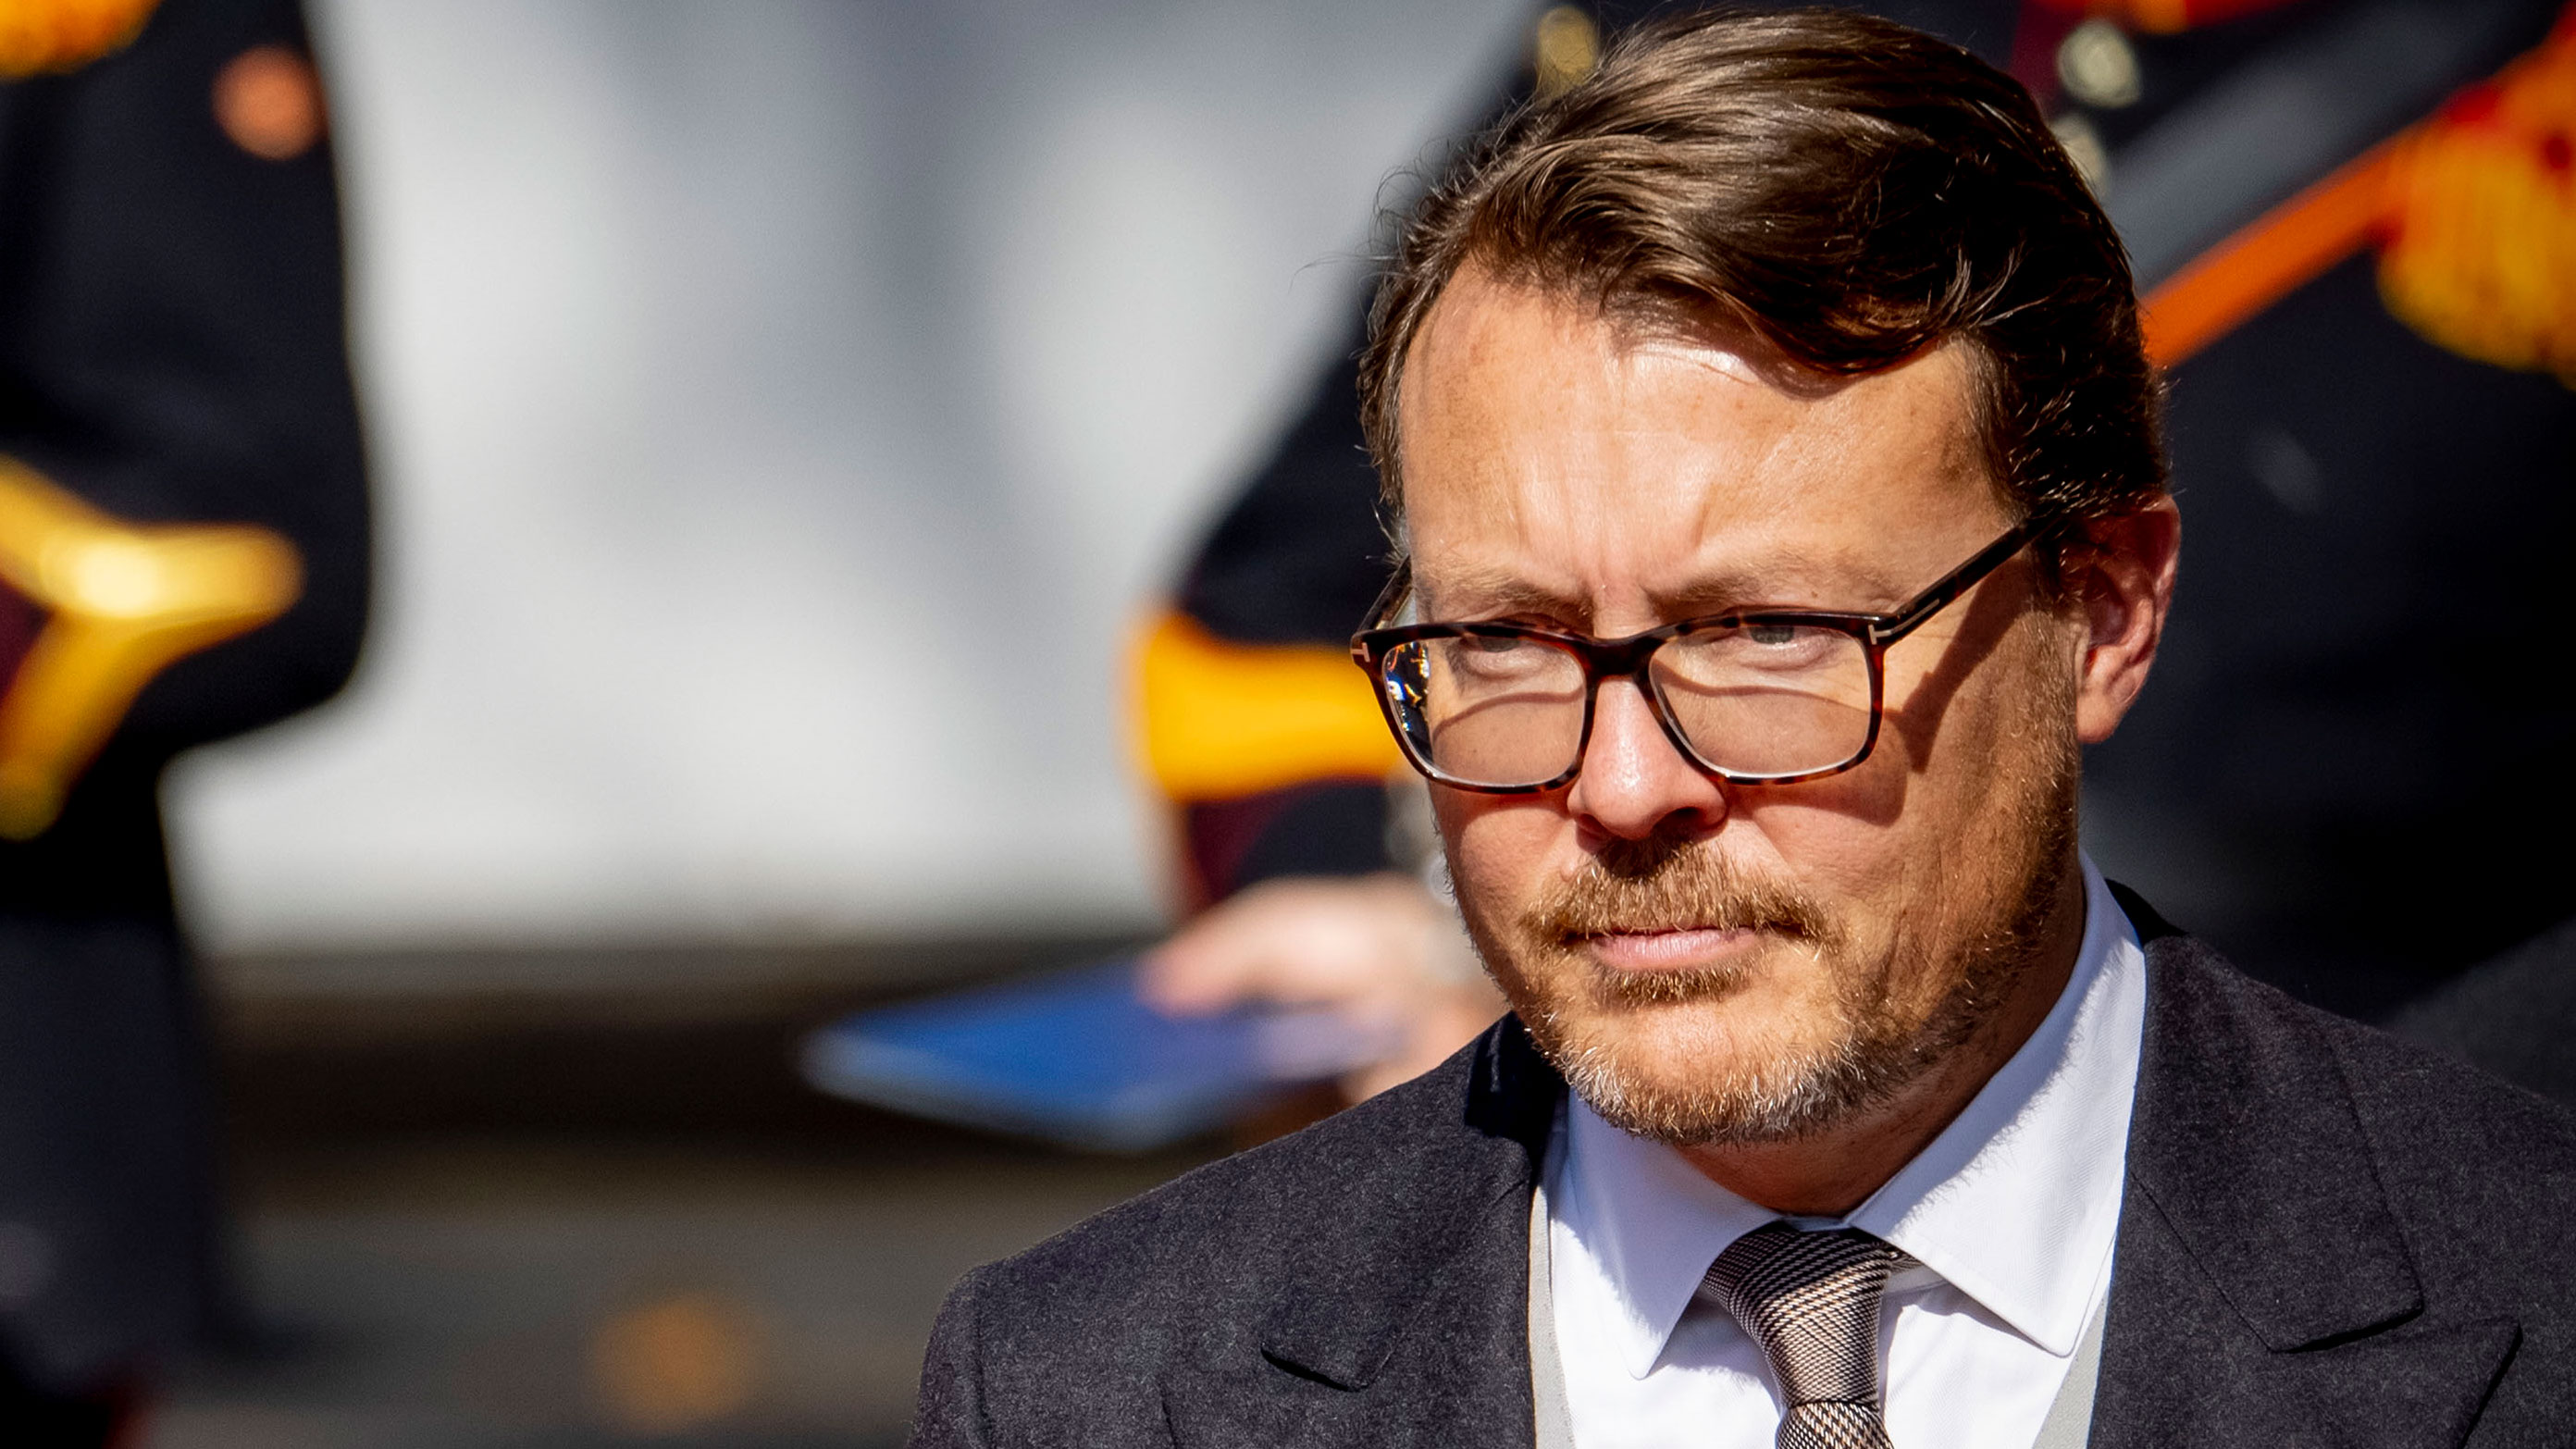 Prince Constantijn of the Netherlands attends Prinsjesdag, the traditional opening of parliament, on September 15 in The Hague, Netherlands.